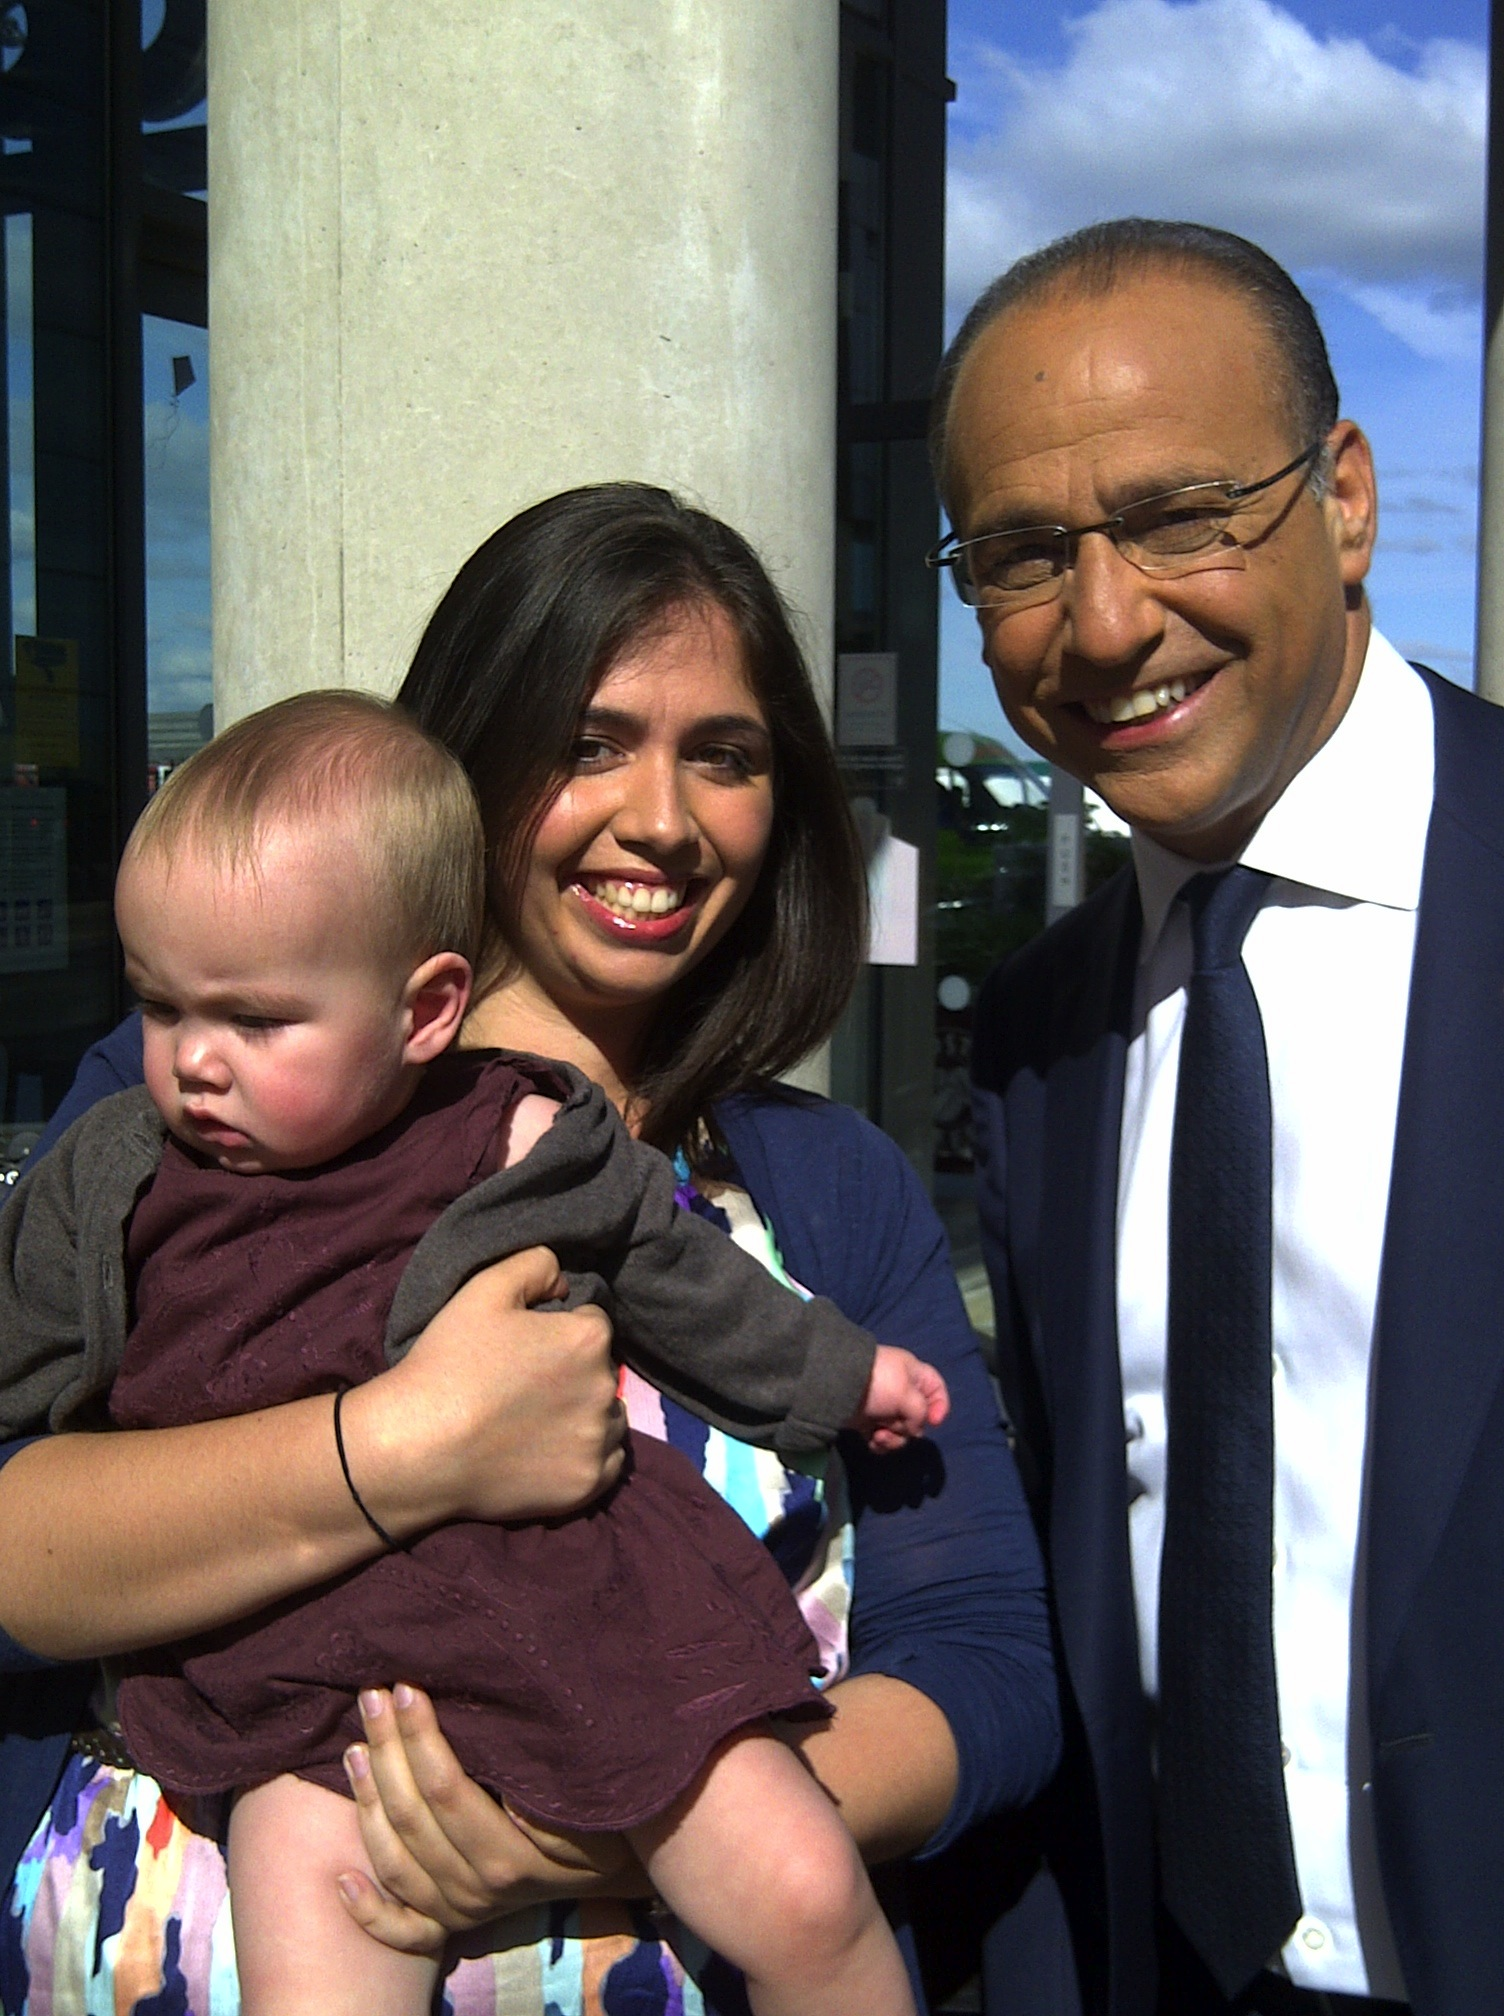 Mummy and Boo with Theo Paphitis